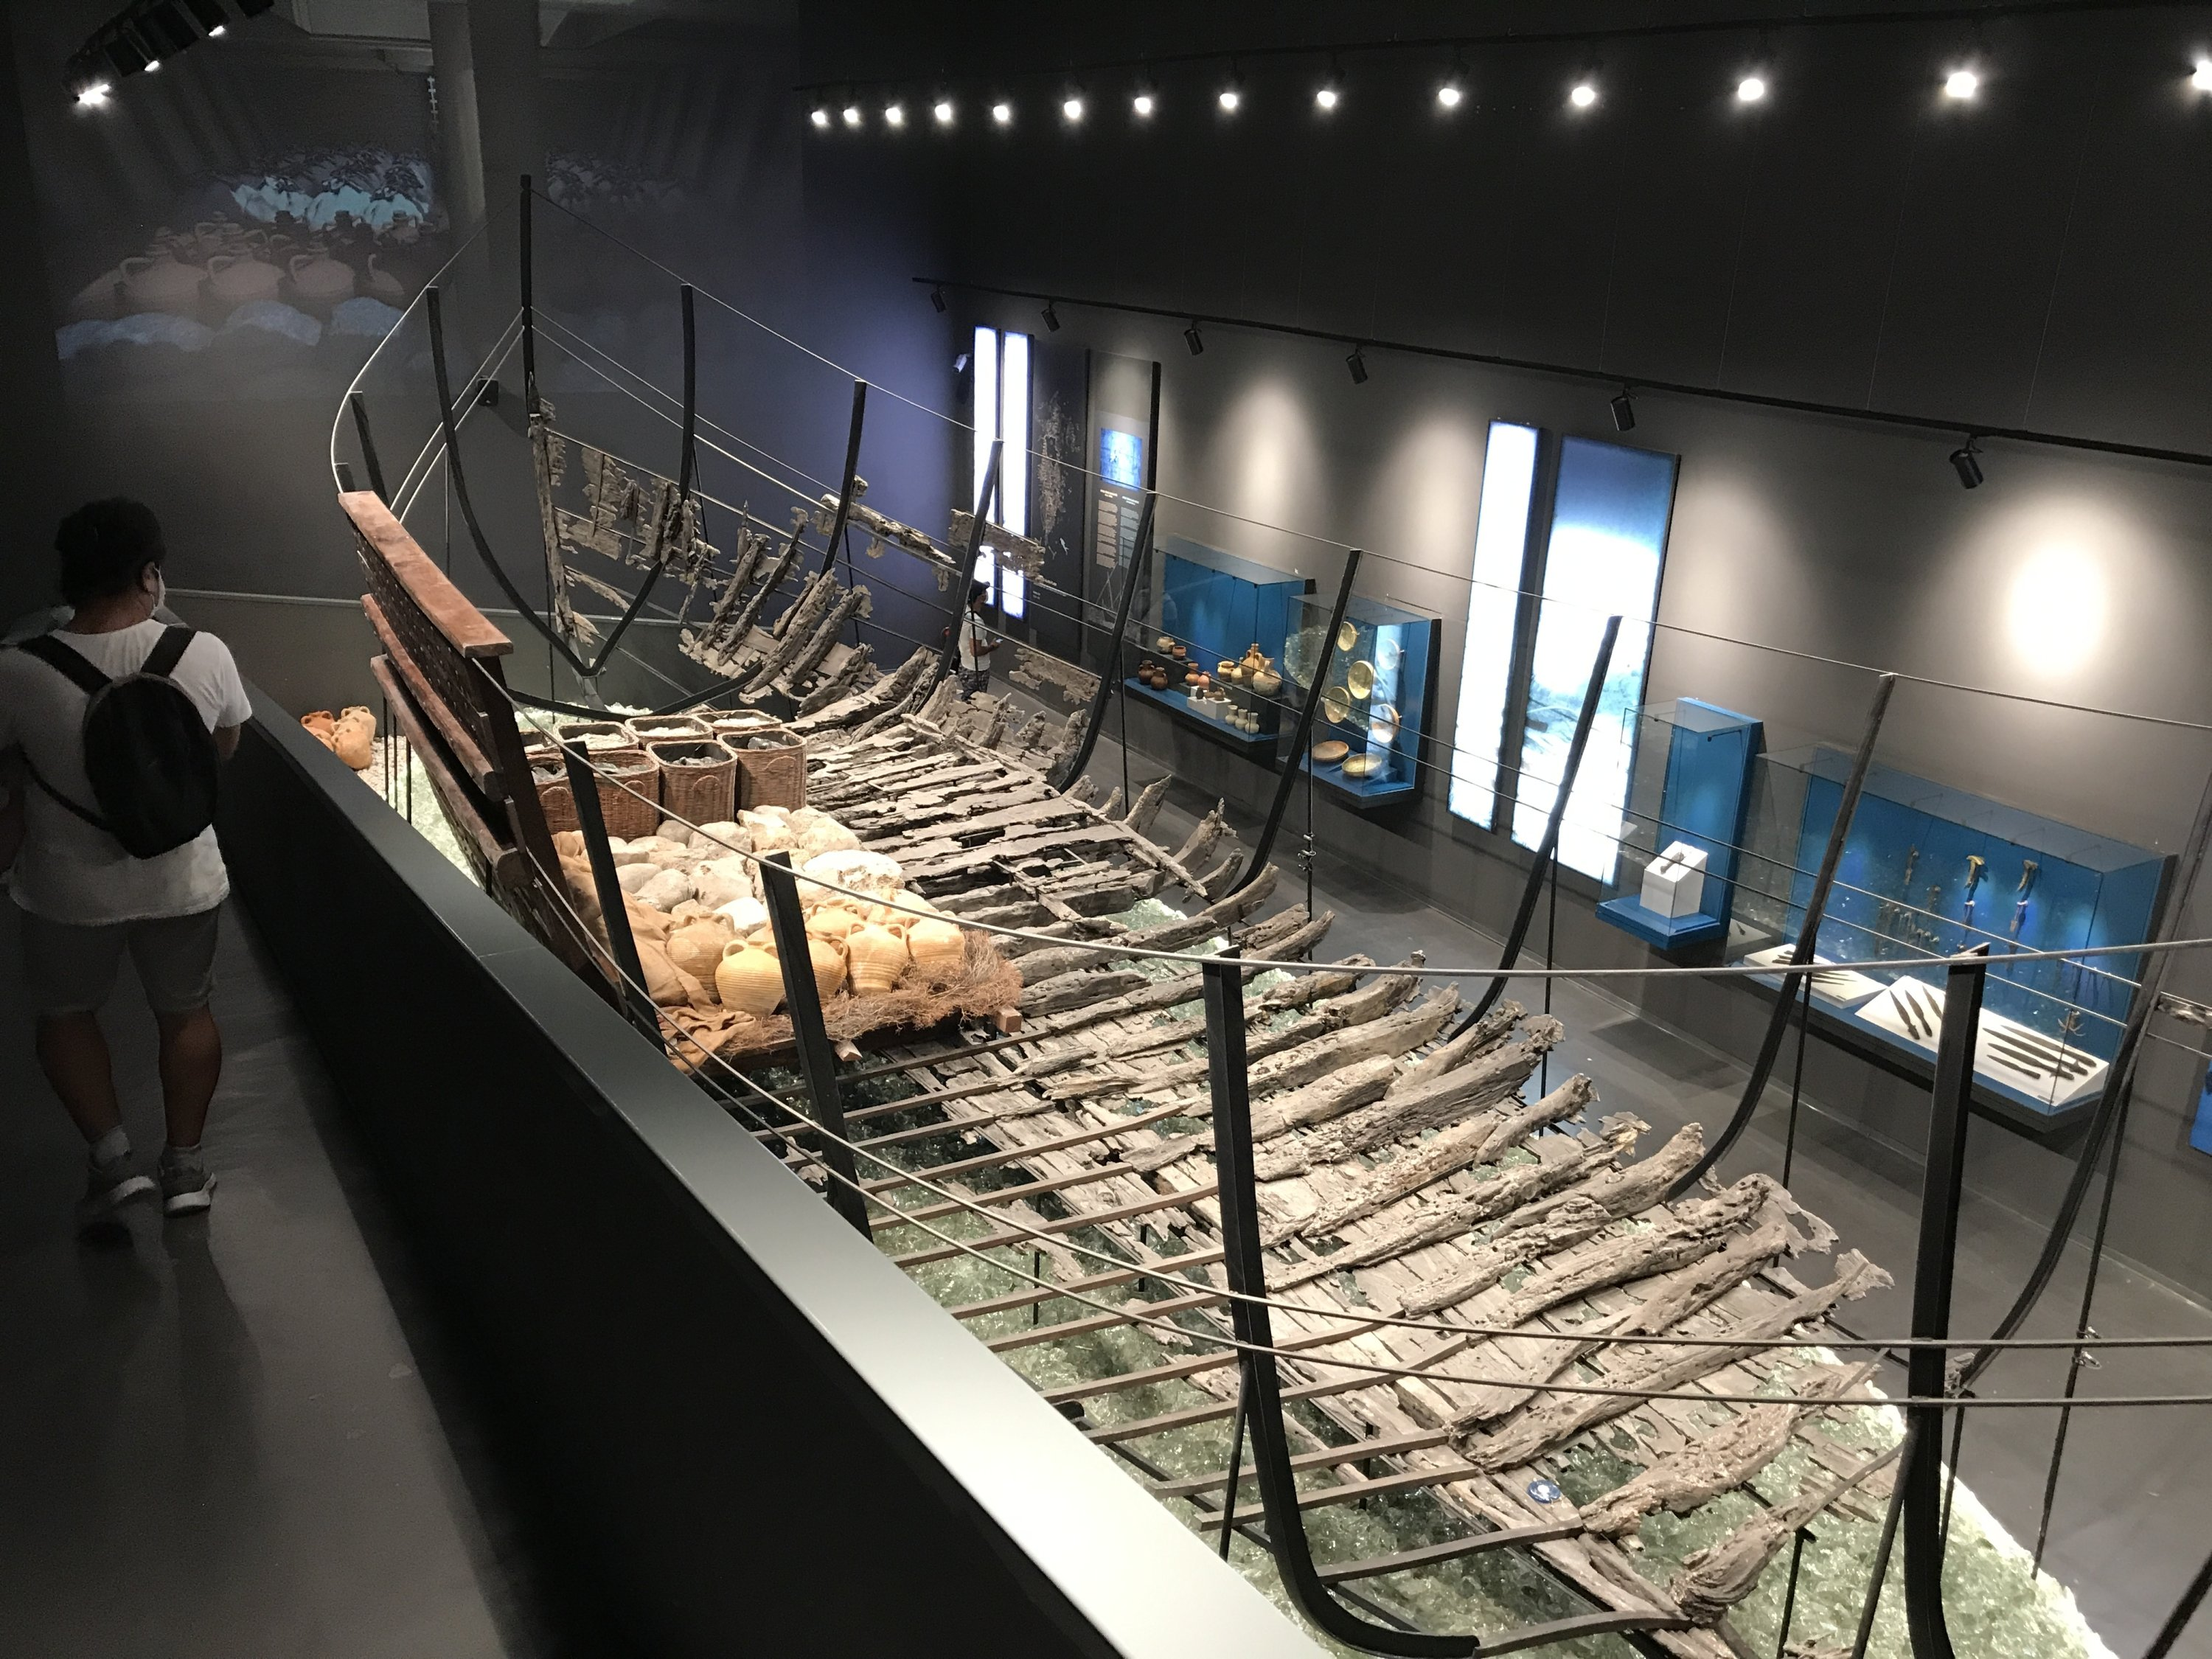 The shipwreck hauled from the sea is seen at the Bodrum Museum of Underwater Archaeology, Muğla, southwestern Turkey, Aug. 20, 2020. (AA Photo)